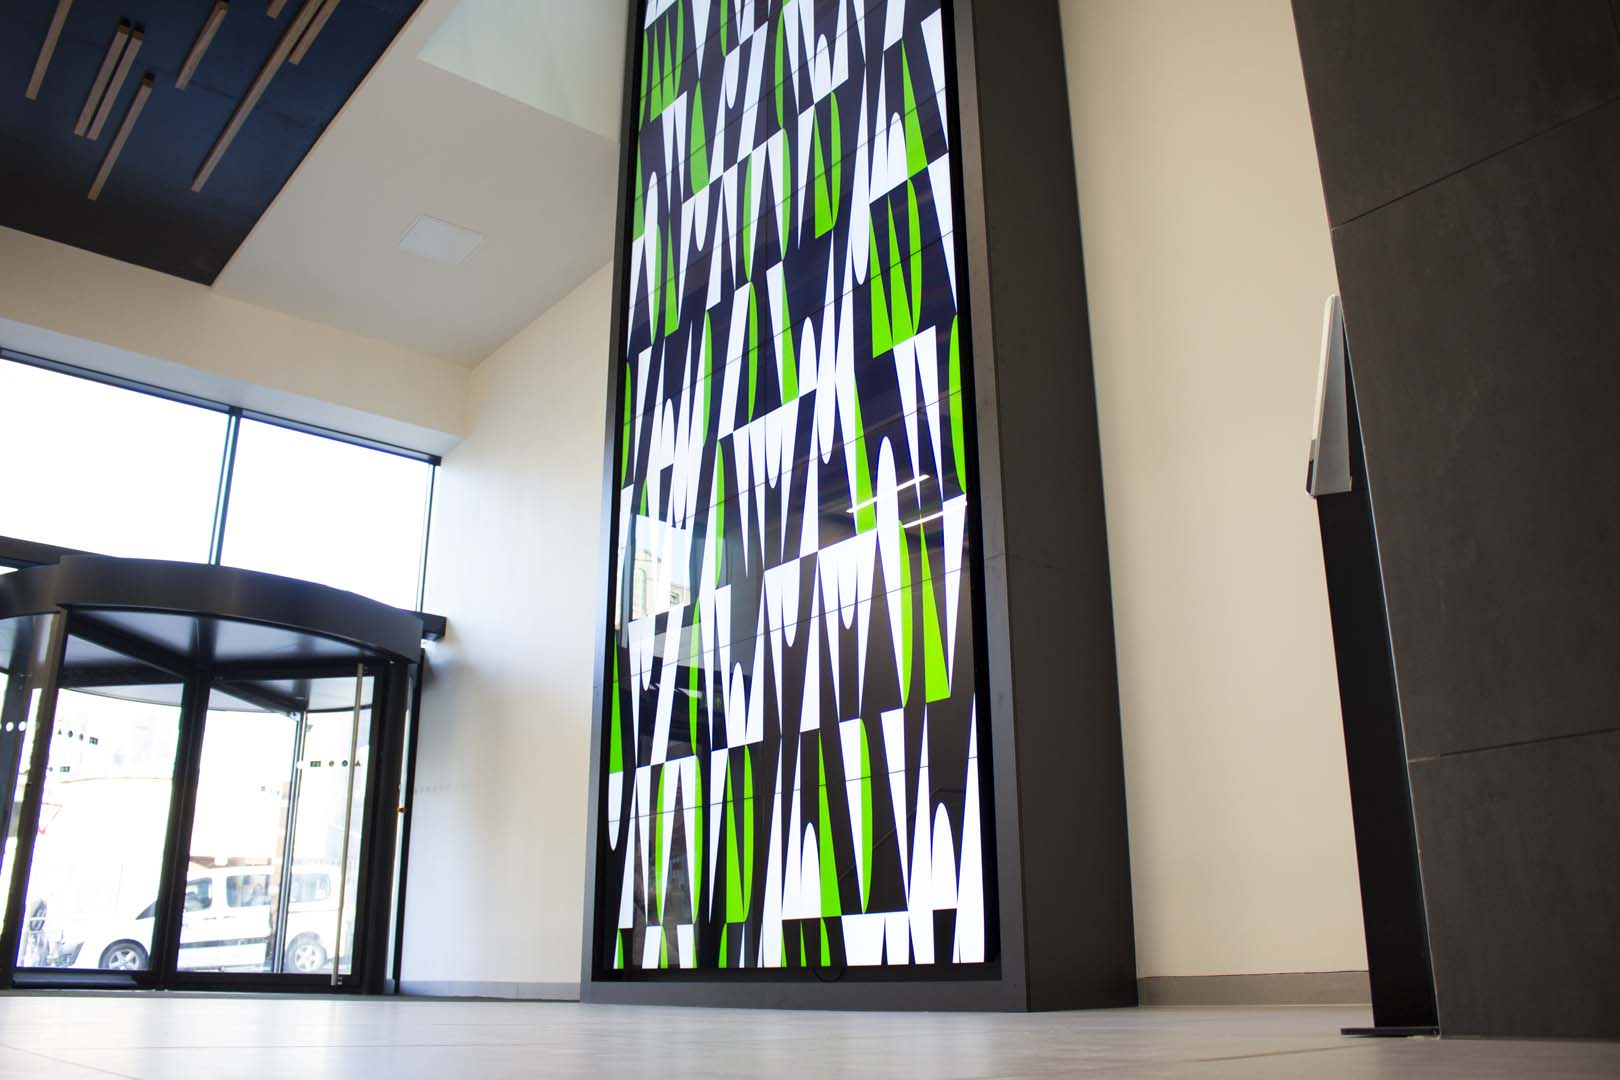 Bruntwood Platform Large Format Video Wall installed by UXG Digital